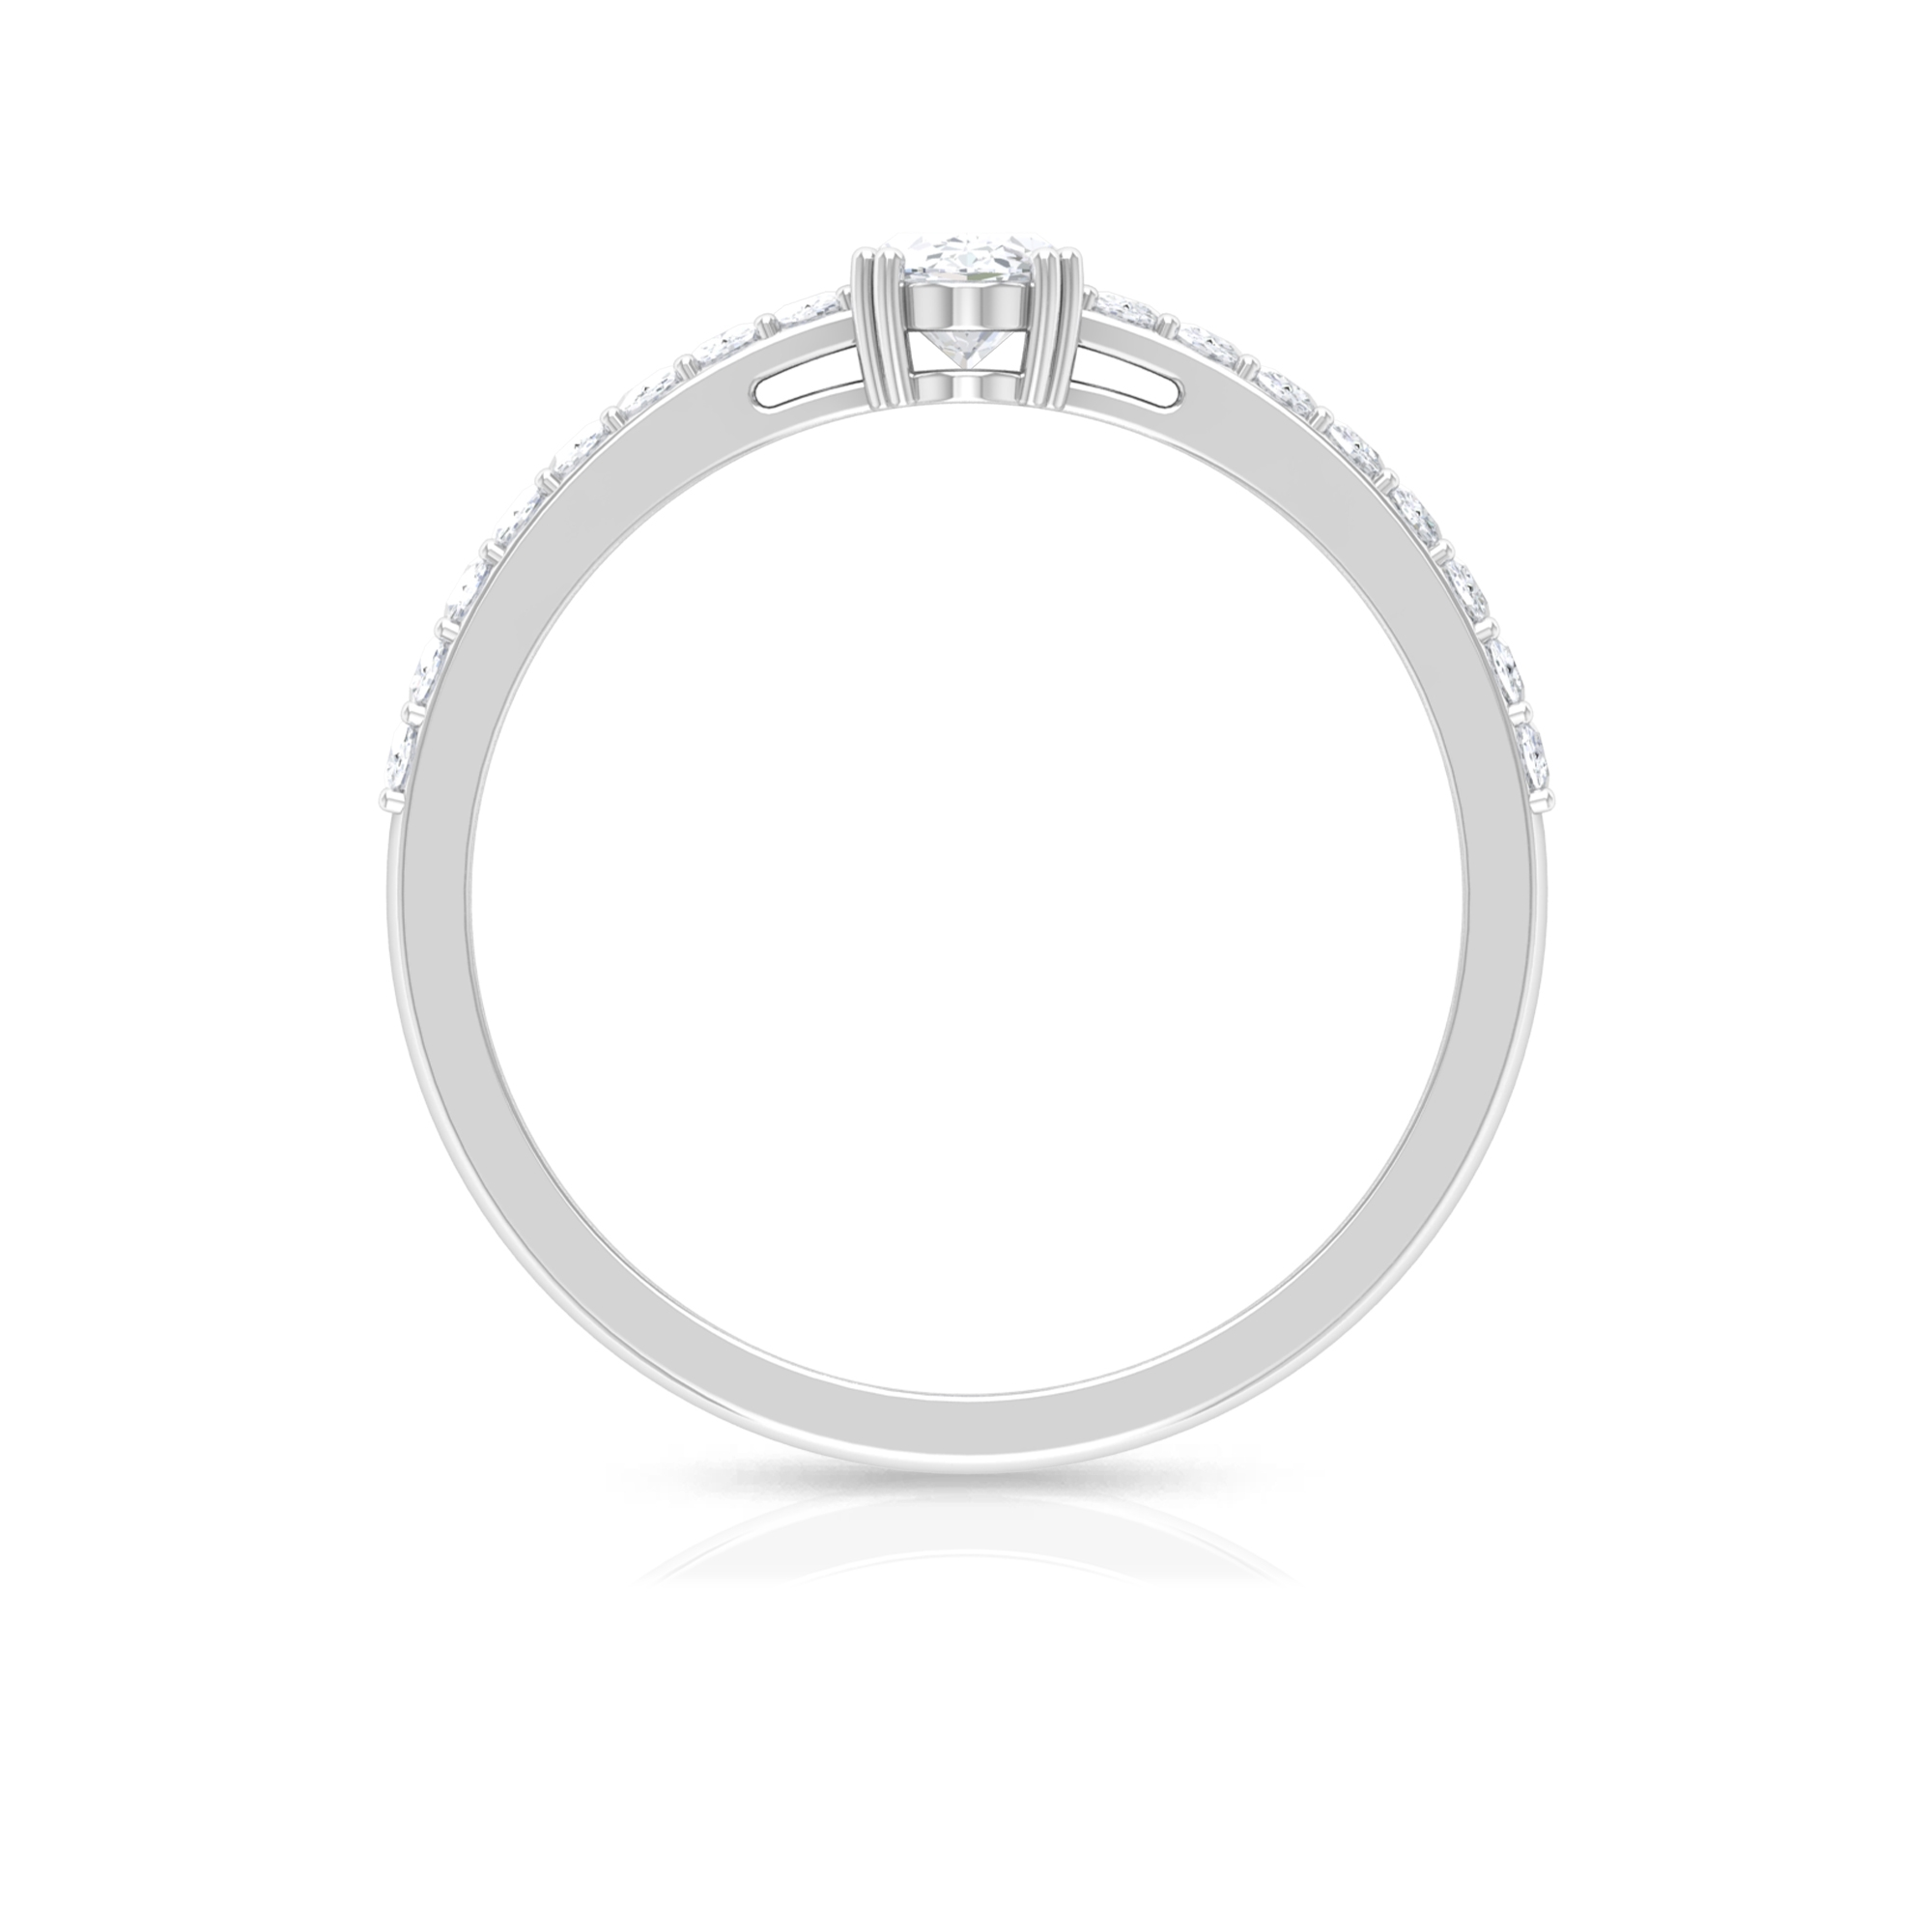 4X6 MM Oval Cut Diamond Solitaire Ring in Double Prong Set with Surface Prong Set Side Stones